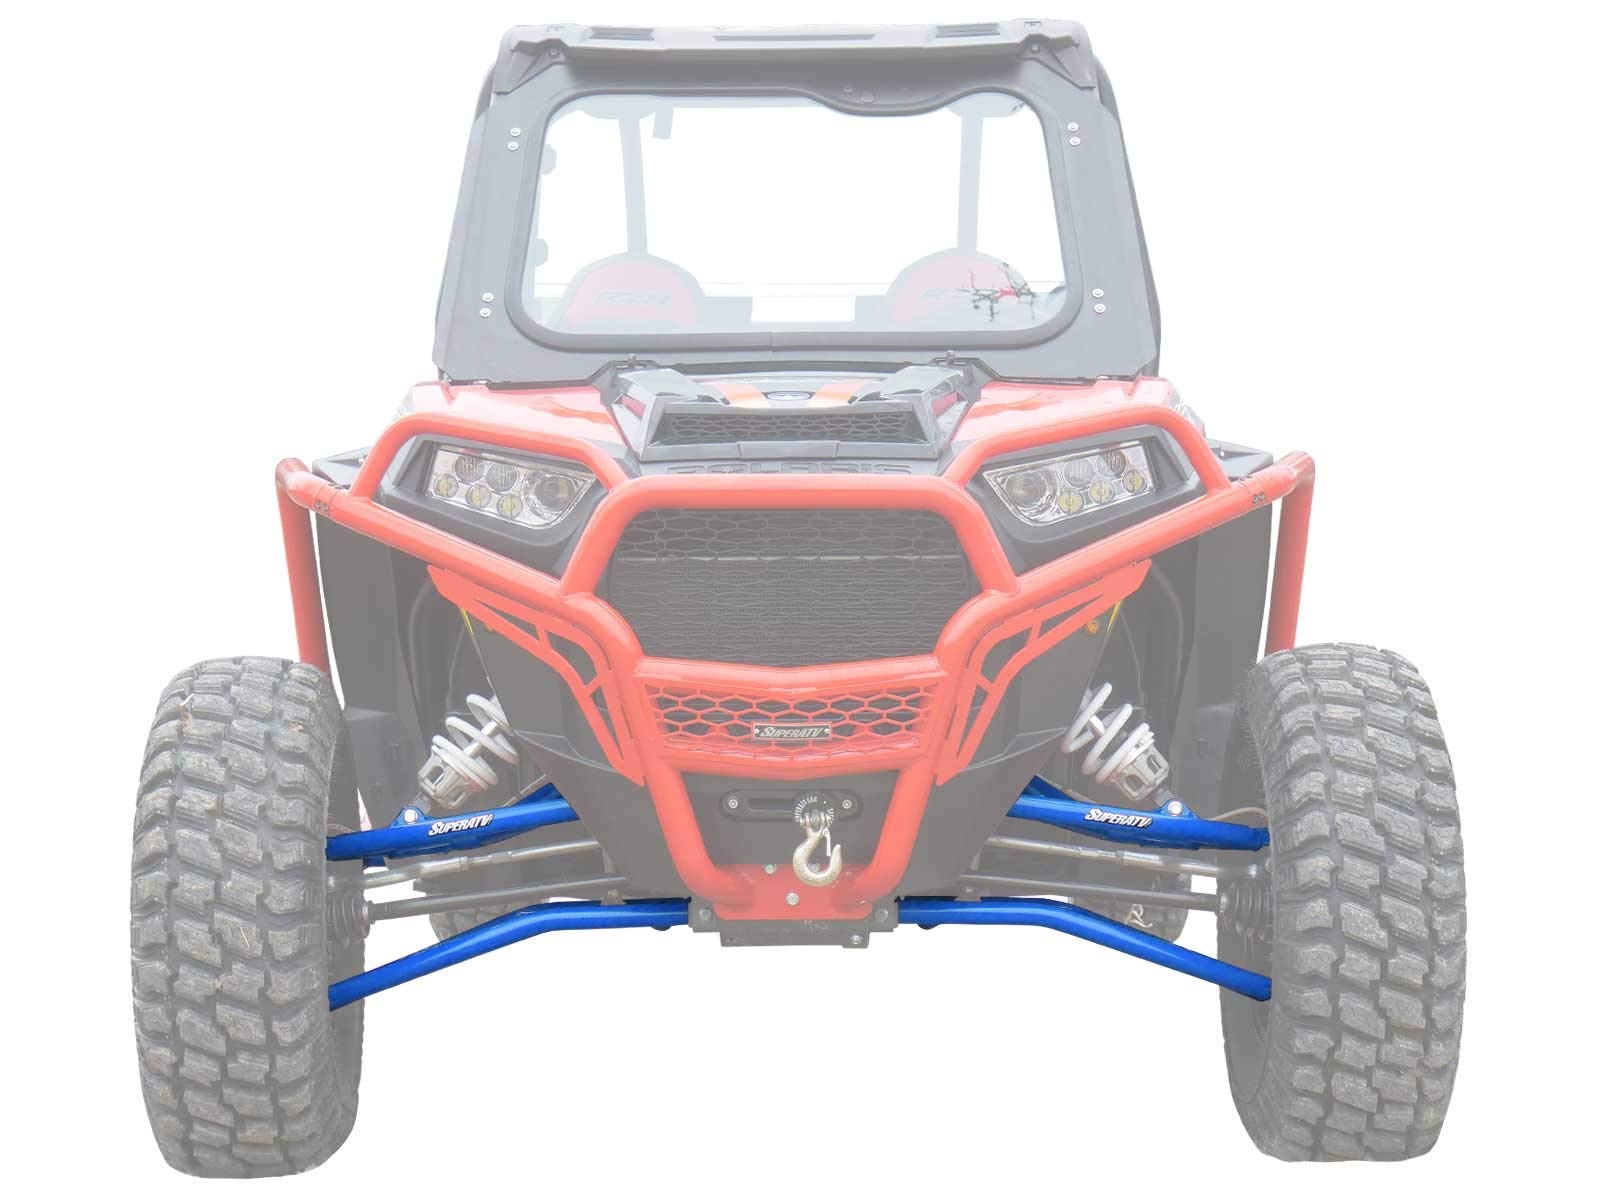 SuperATV Heavy Duty High Clearance Front A-Arms for Polaris RZR XP 1000 / XP 4 1000 (2014+) - Blue - Includes All 4 Arms - Non-Adjustable